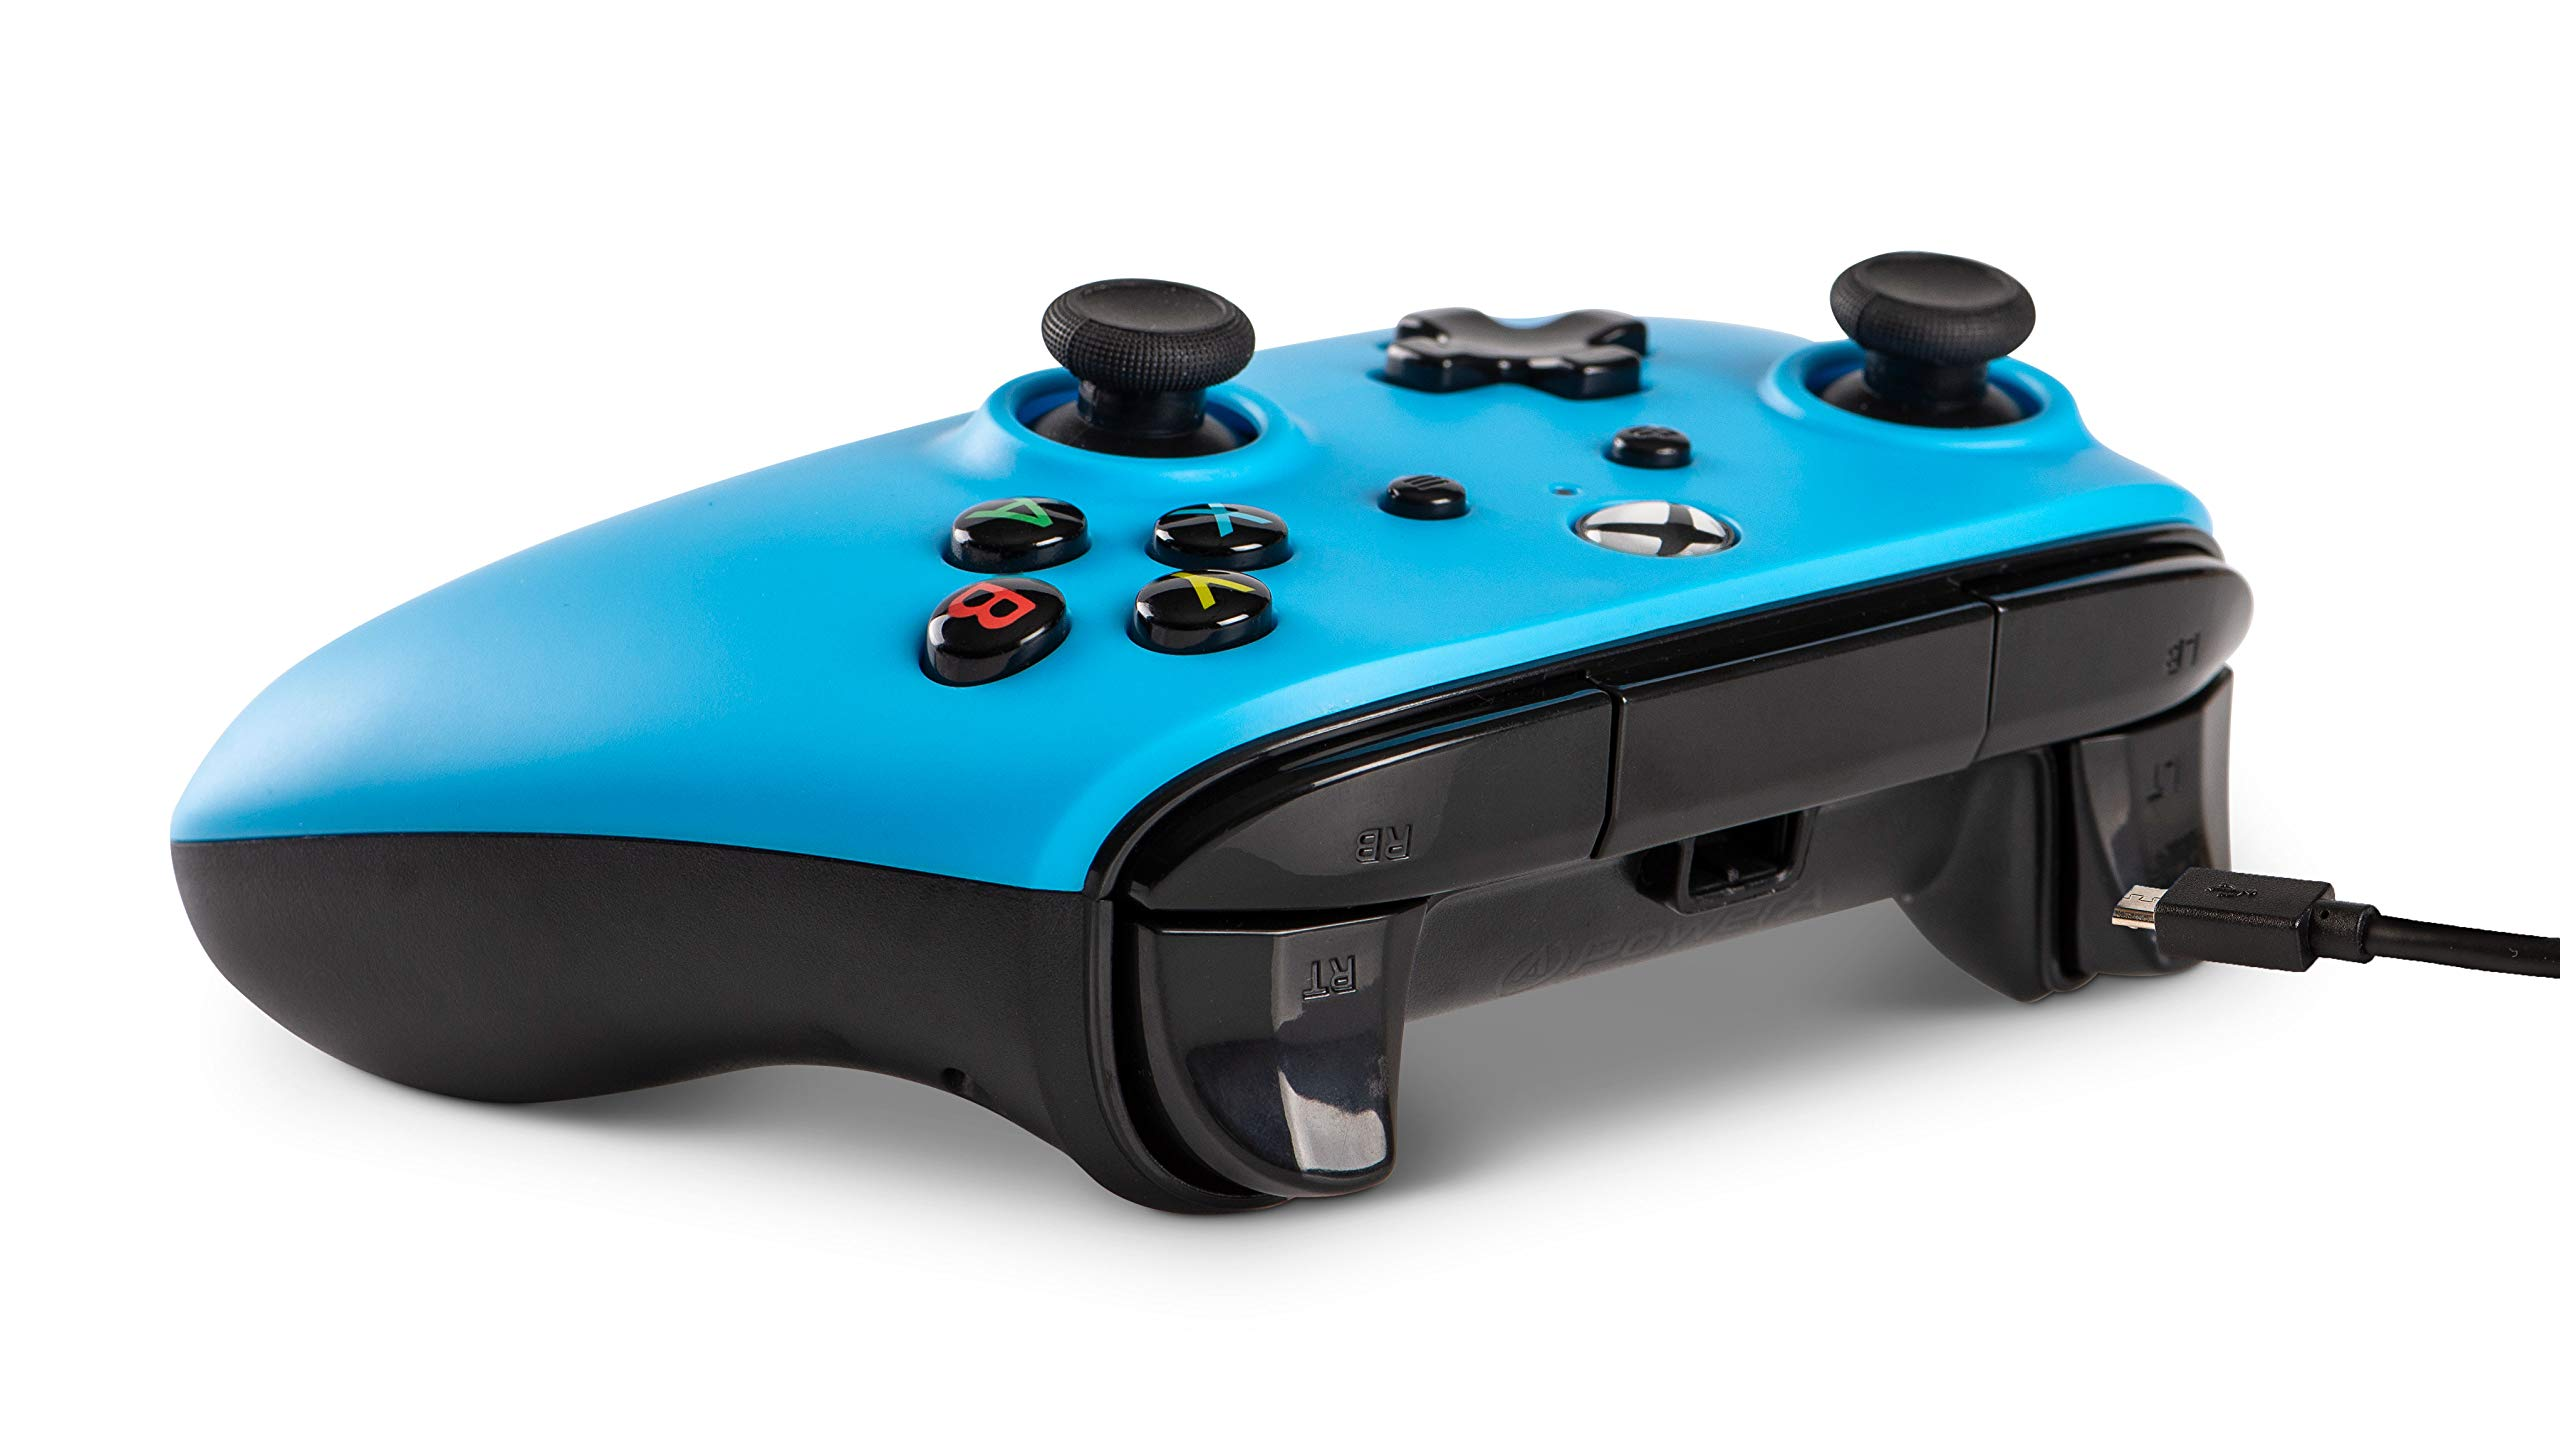 Wired Officially Licensed Controller For Xbox One, S, Xbox One X & Windows 10 - Blue (Xbox One)